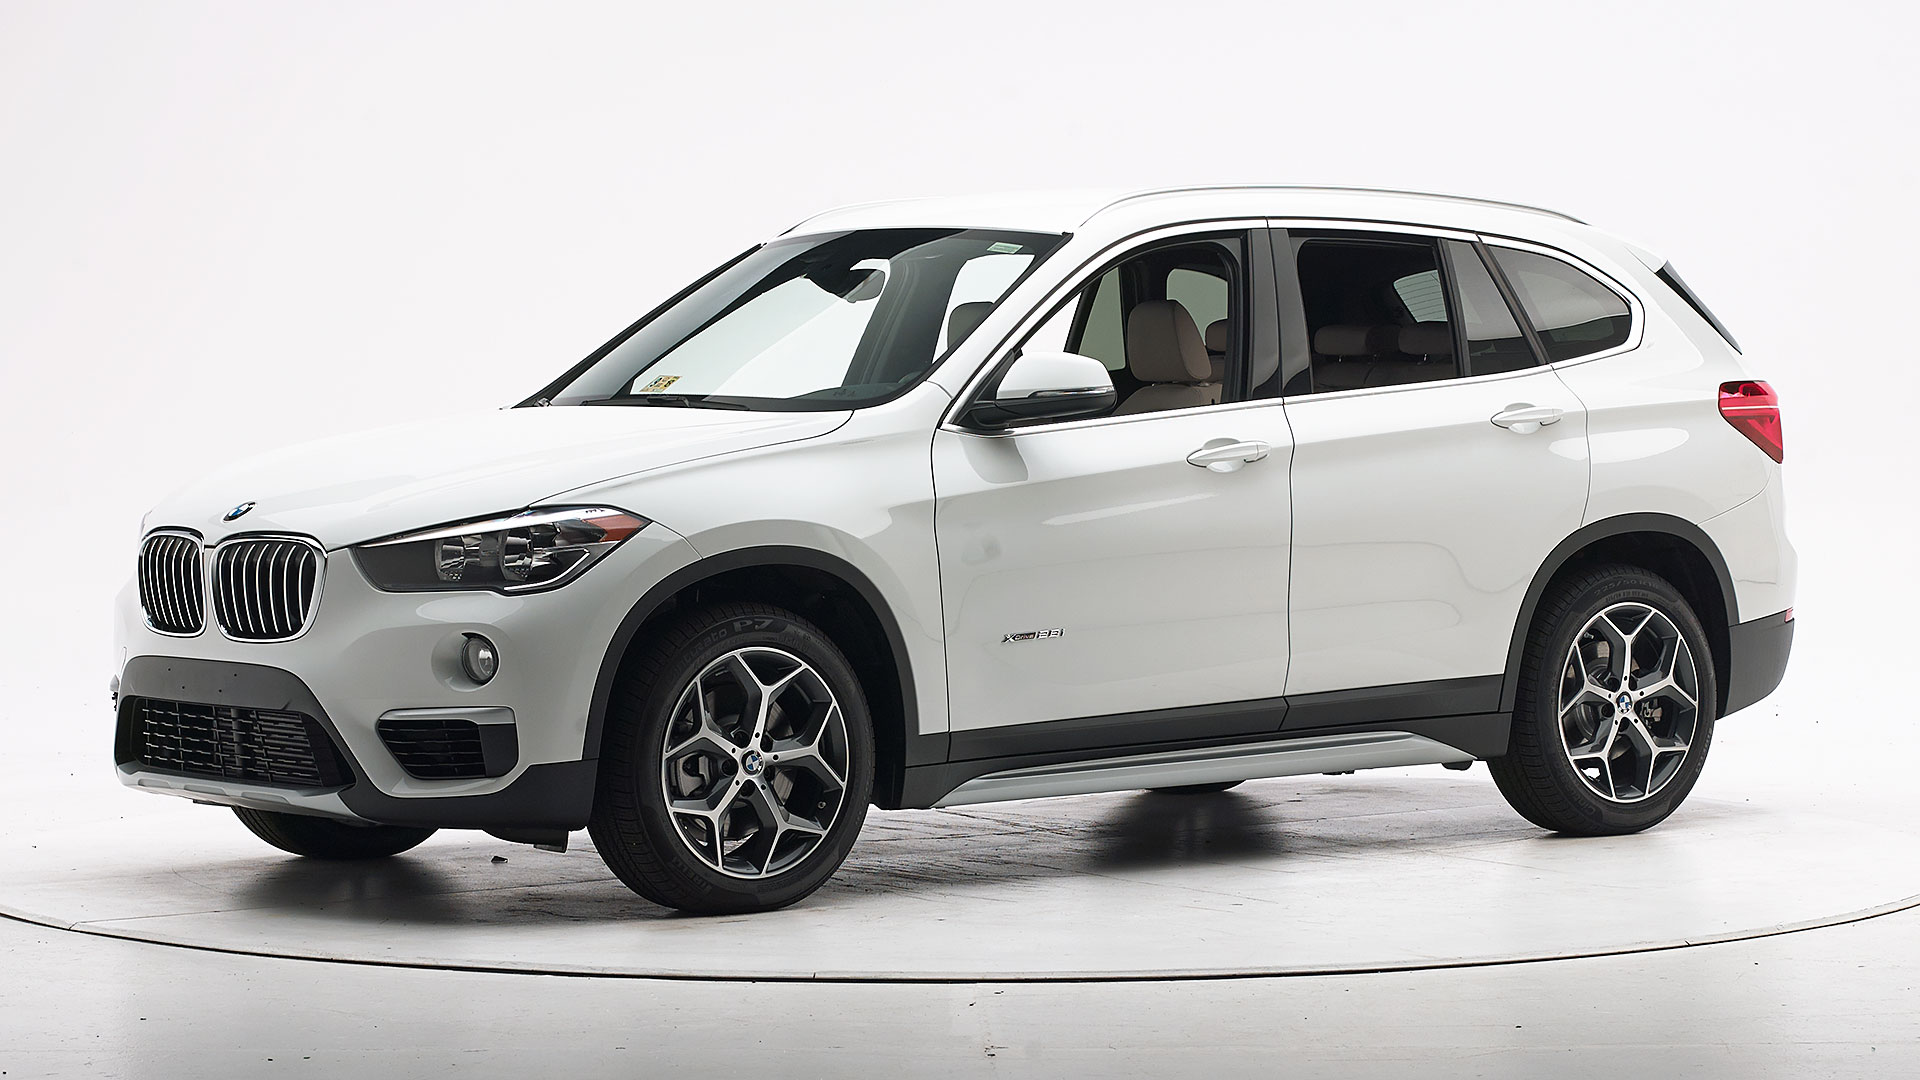 2018 BMW X1 4-door SUV